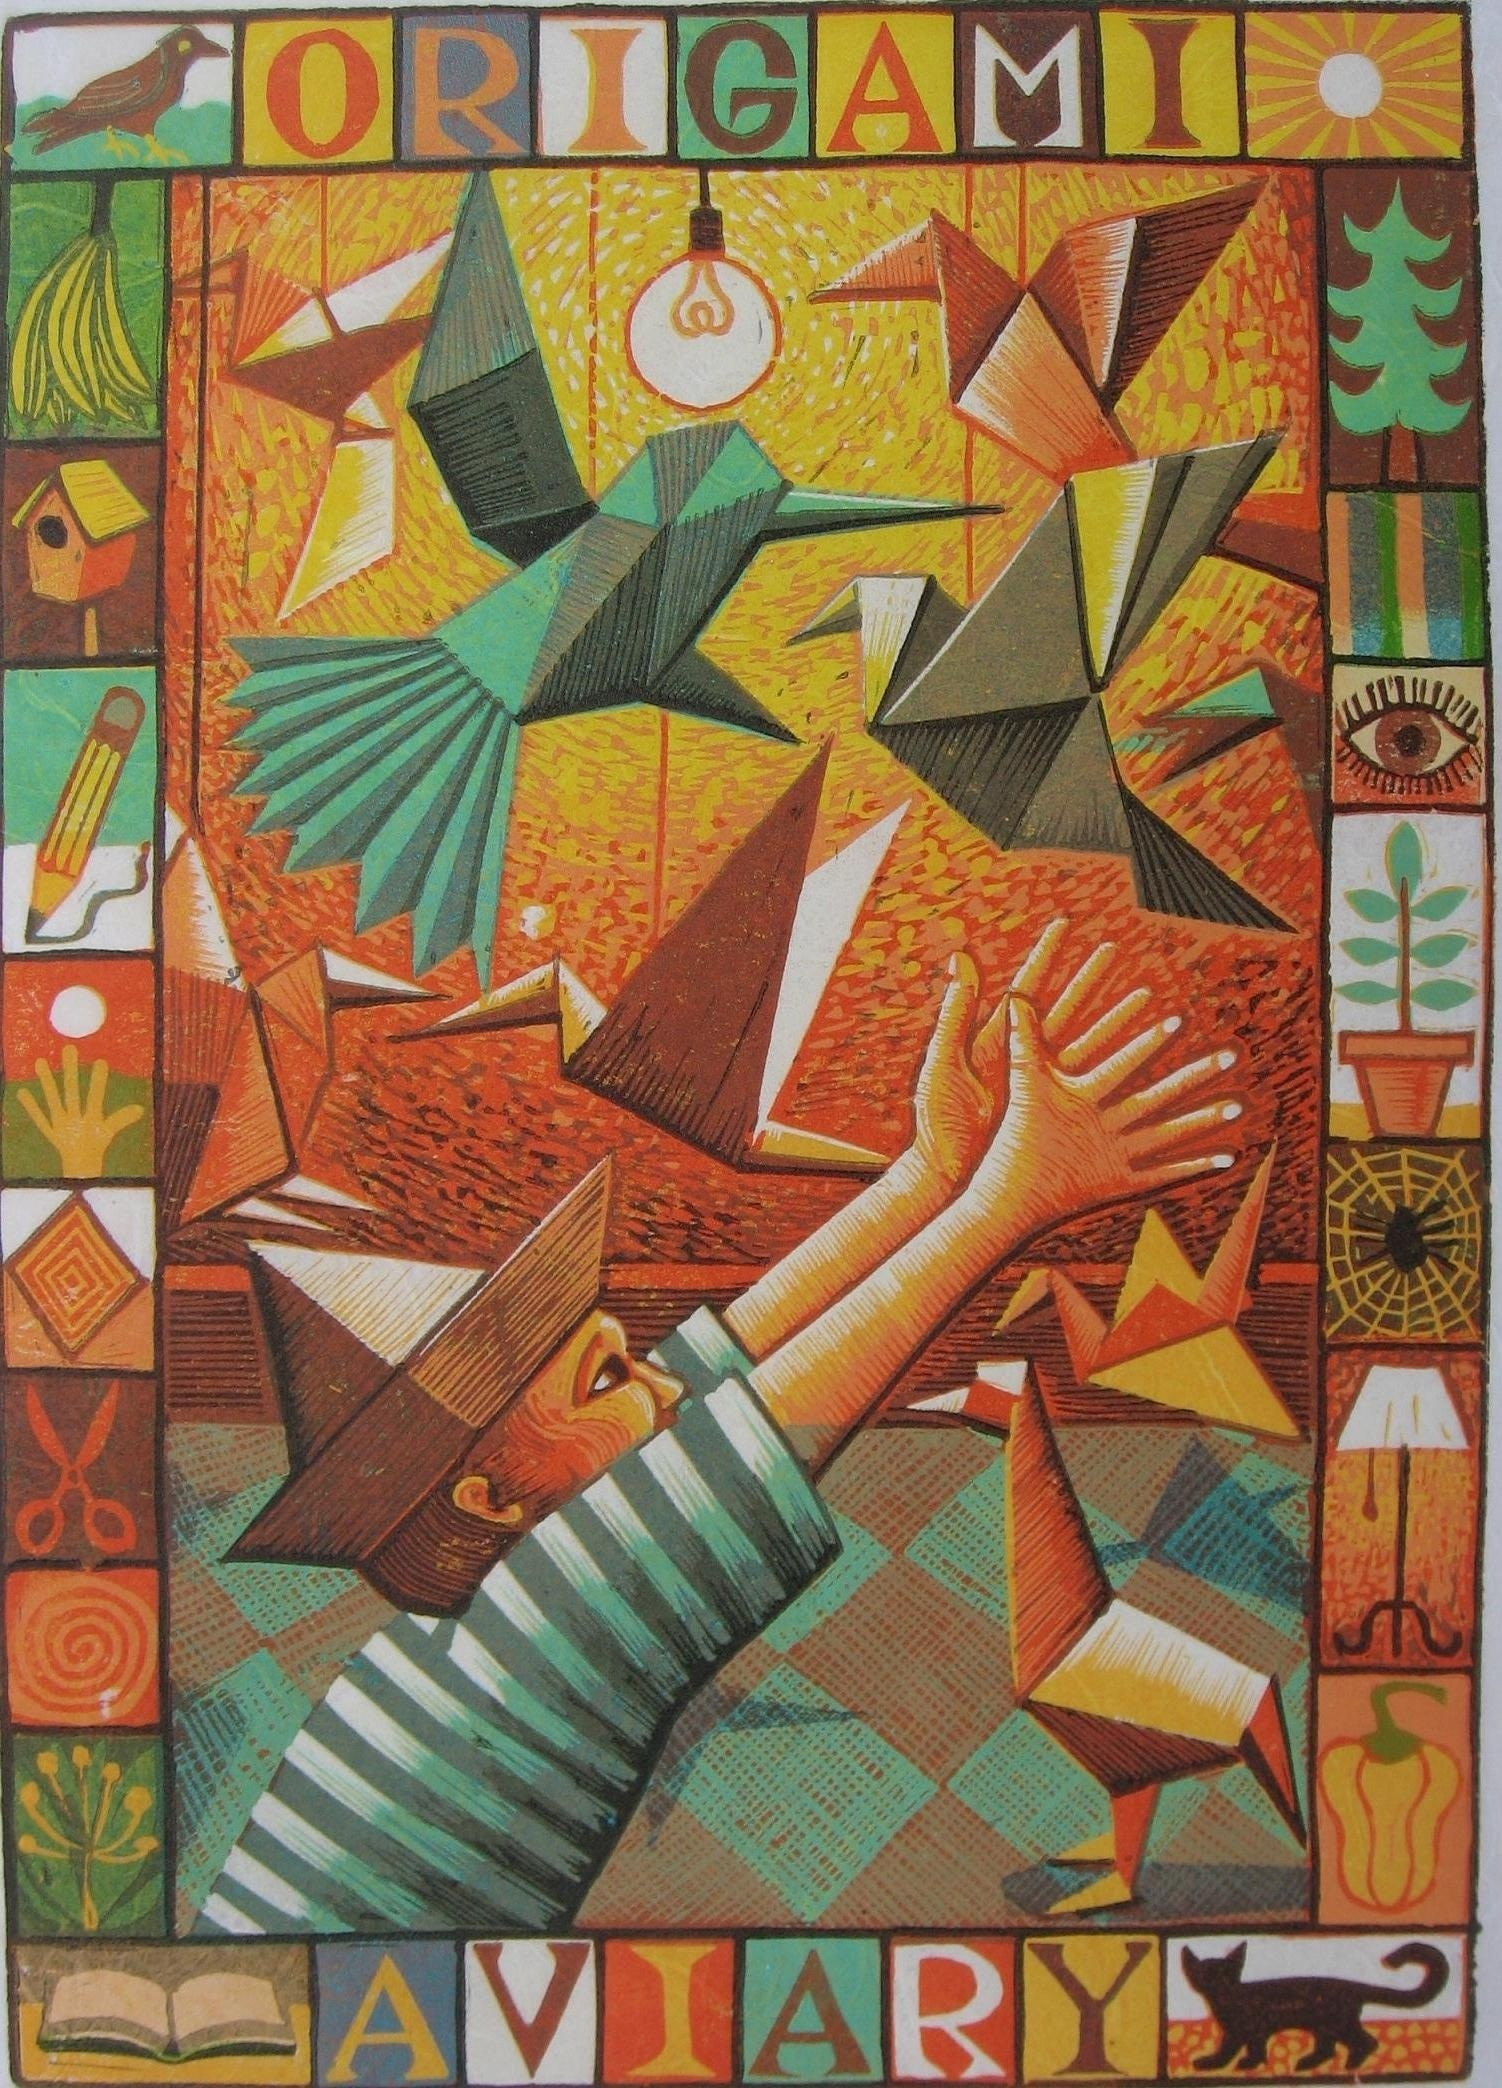 """<span class=""""link fancybox-details-link""""><a href=""""/exhibitions/17/works/image_standalone625/"""">View Detail Page</a></span><p><strong>Jim Anderson</strong></p><p>Children's Games VIII (Origami Aviary)</p><p>linocut, ed of 10</p><p>54 x 44cm</p><p>£300 framed</p><p>£230 unframed</p>"""